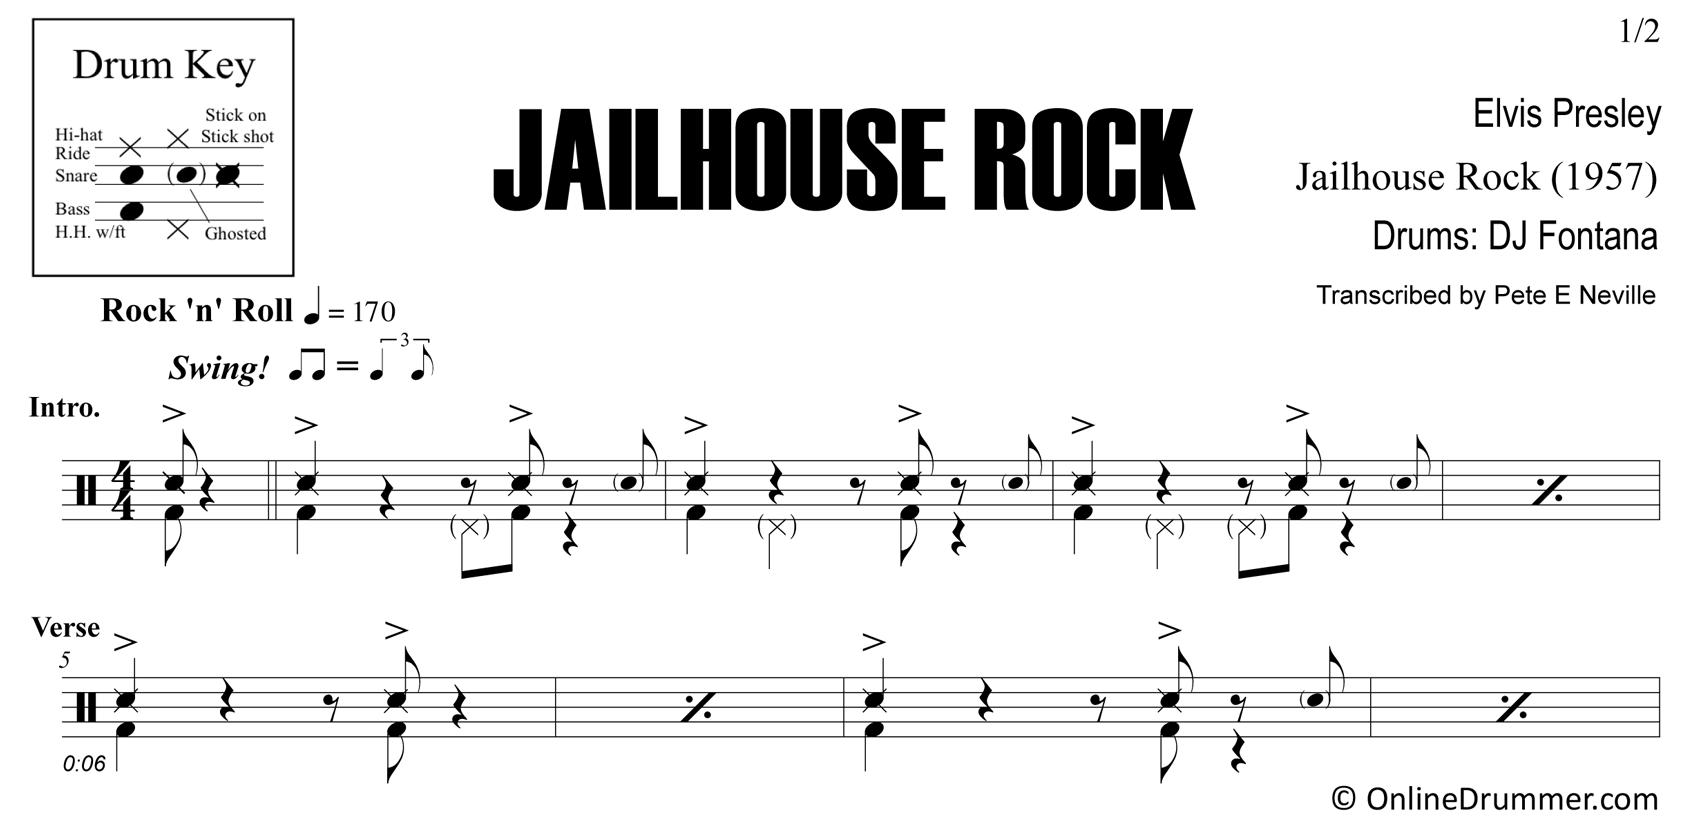 Jailhouse Rock - Elvis Presley - Drum Sheet Music